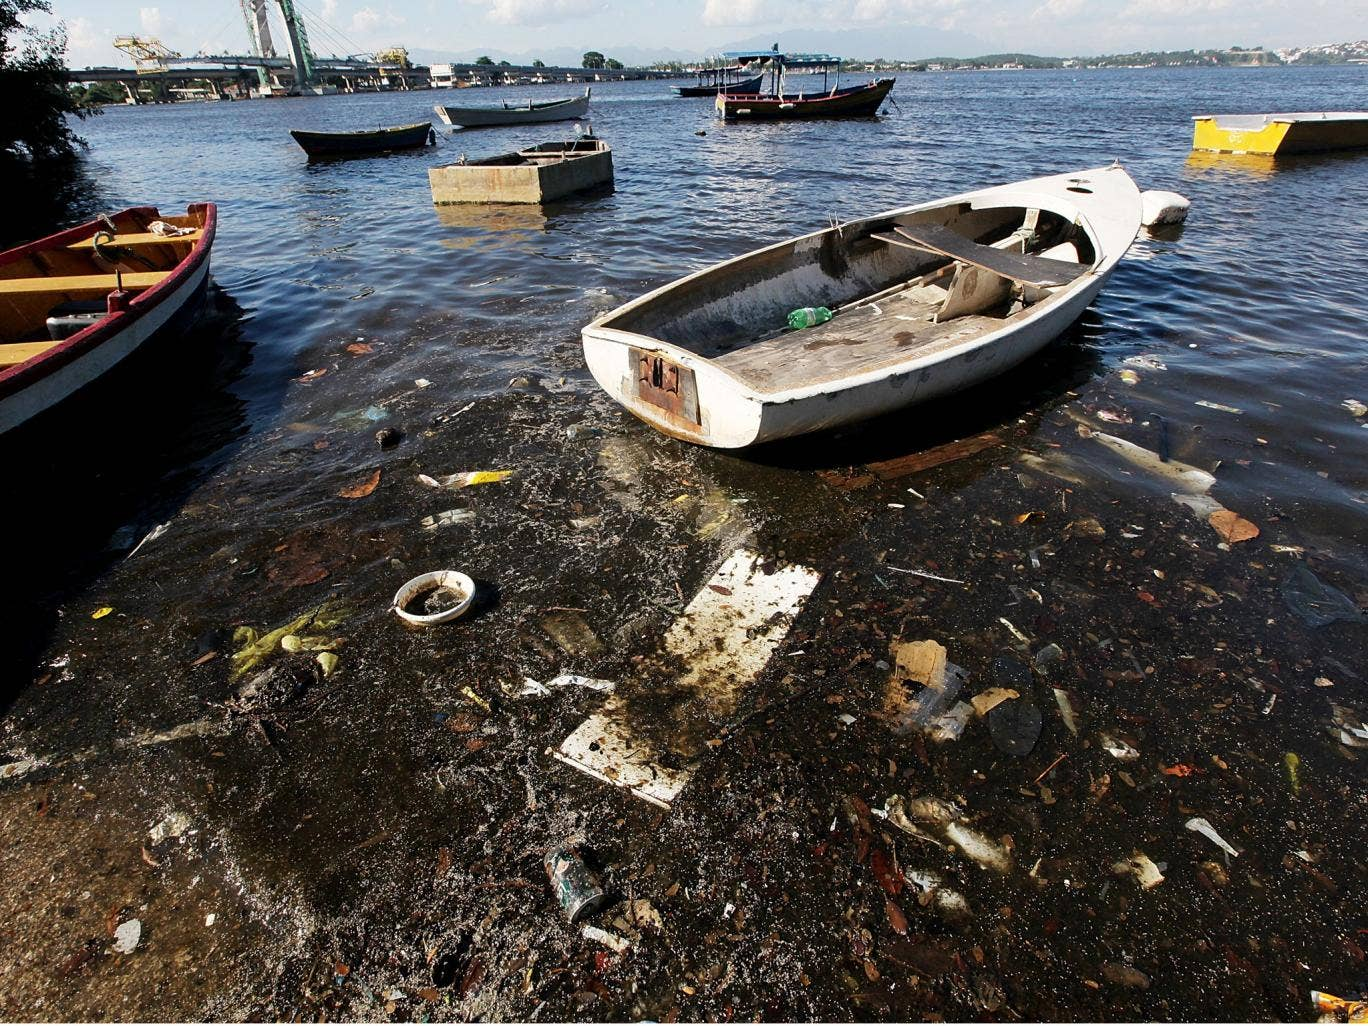 Boats float along the shoreline of the polluted waters of Guanabara Bay